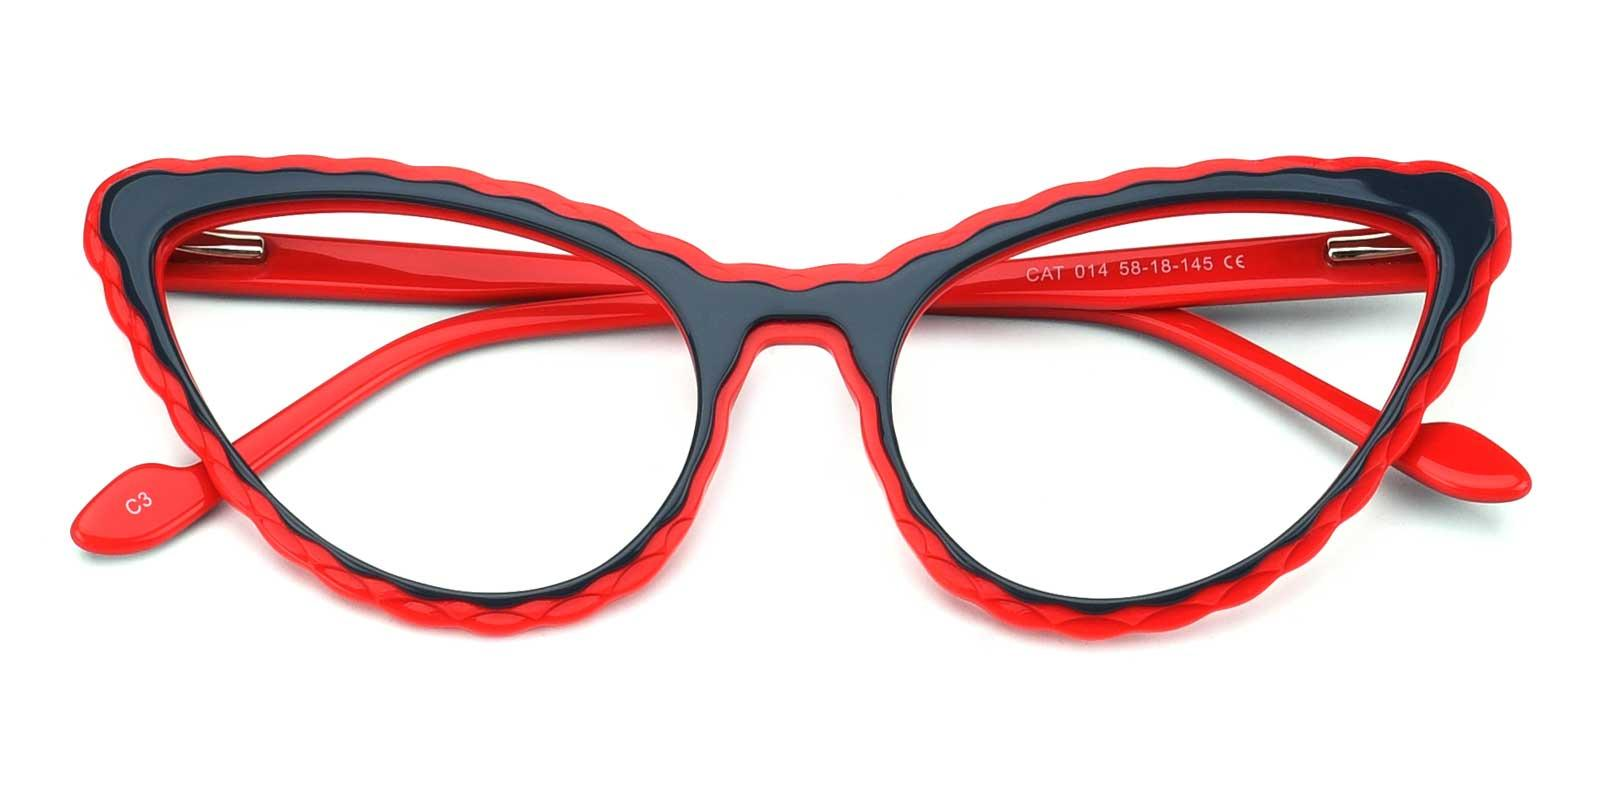 Barry-Red-Cat-Acetate-Eyeglasses-detail